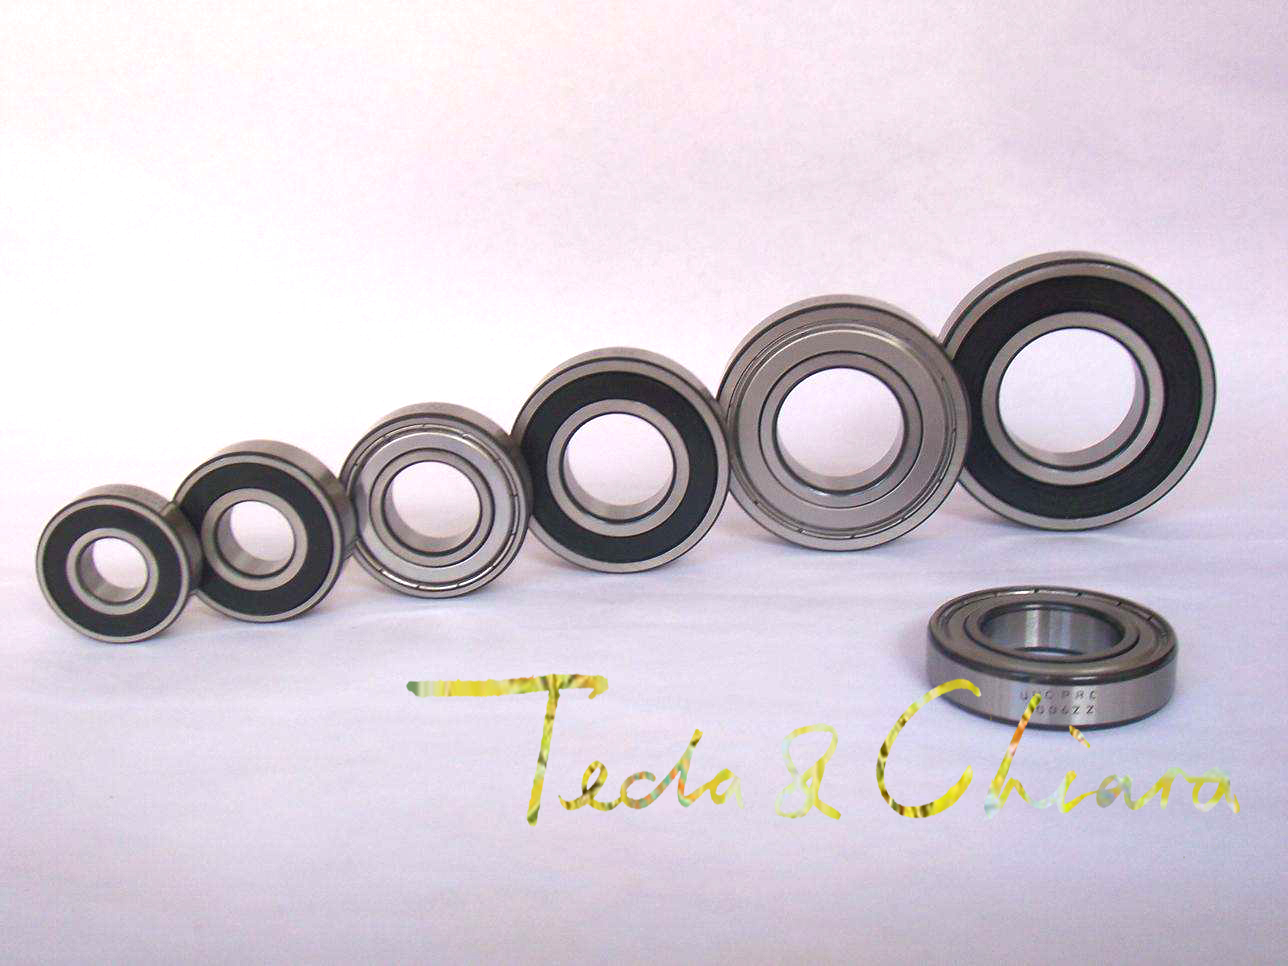 624 624ZZ 624RS 624-2Z 624Z 624-2RS ZZ RS RZ 2RZ Deep Groove Ball Bearings 4 x 13 x 5mm High Quality free shipping 25x47x12mm deep groove ball bearings 6005 zz 2z 6005zz bearing 6005zz 6005 2rs